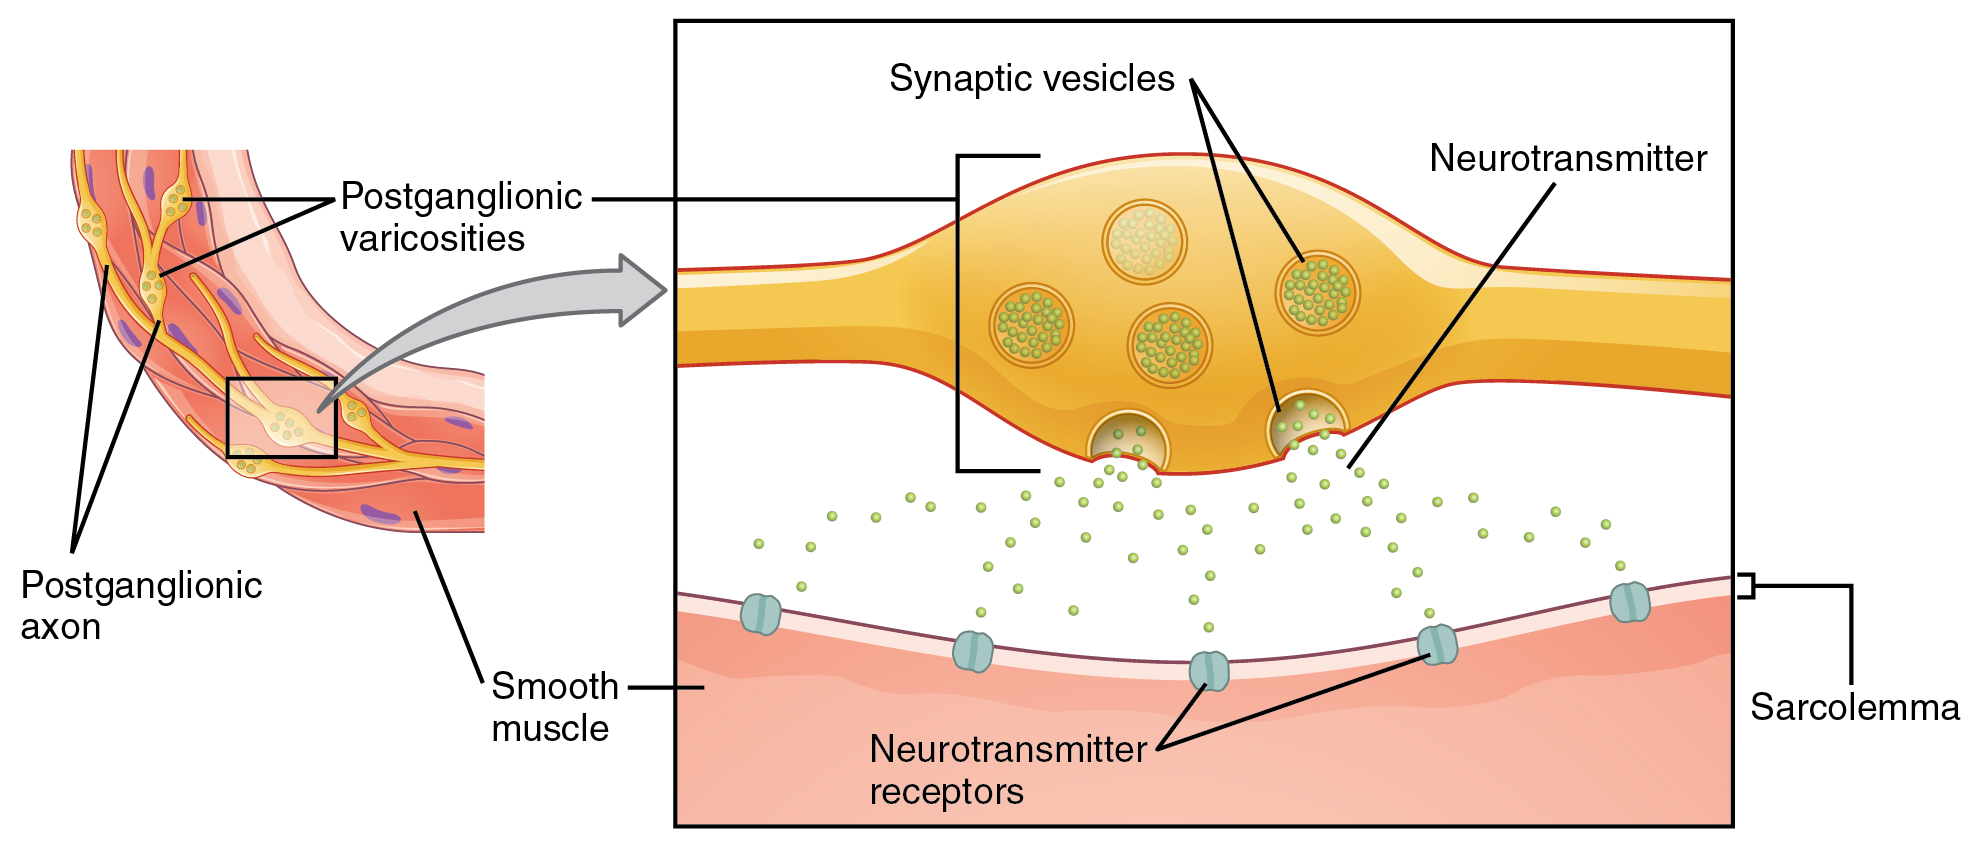 This figure shows the connection between autonomic fibers and the target effectors. The left image shows a slice of smooth muscle with the postganglionic varicosities and the postganglionic axons labeled. The right panel shows a magnified view of the synaptic vesicles, neurotransmitters, and the sarcolemma.